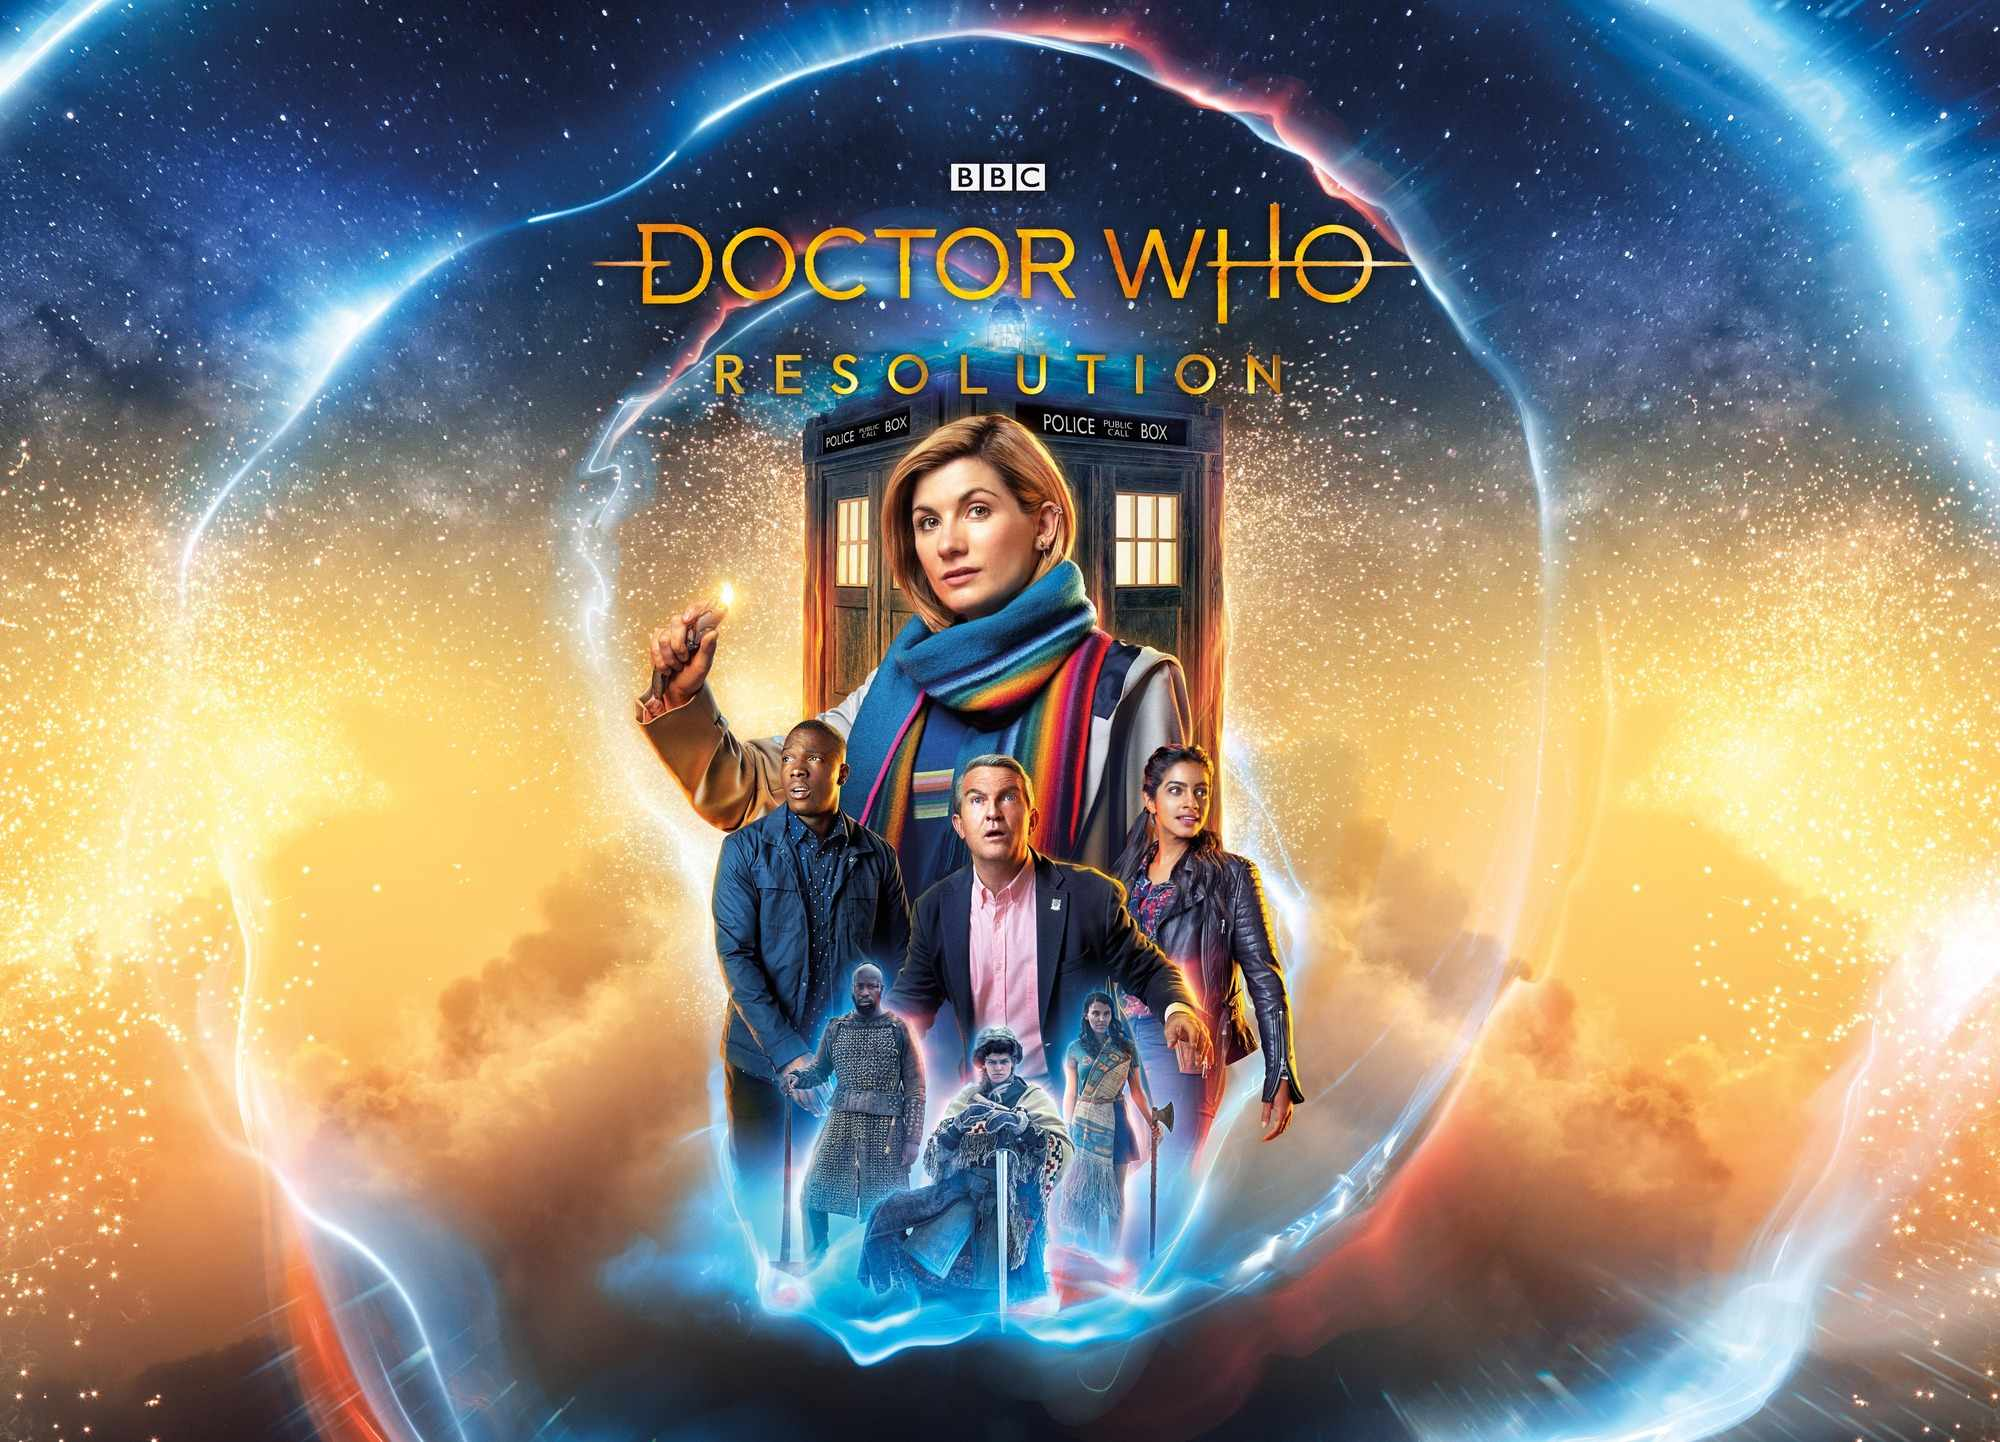 Doctor Who new Year's Day special Resolution